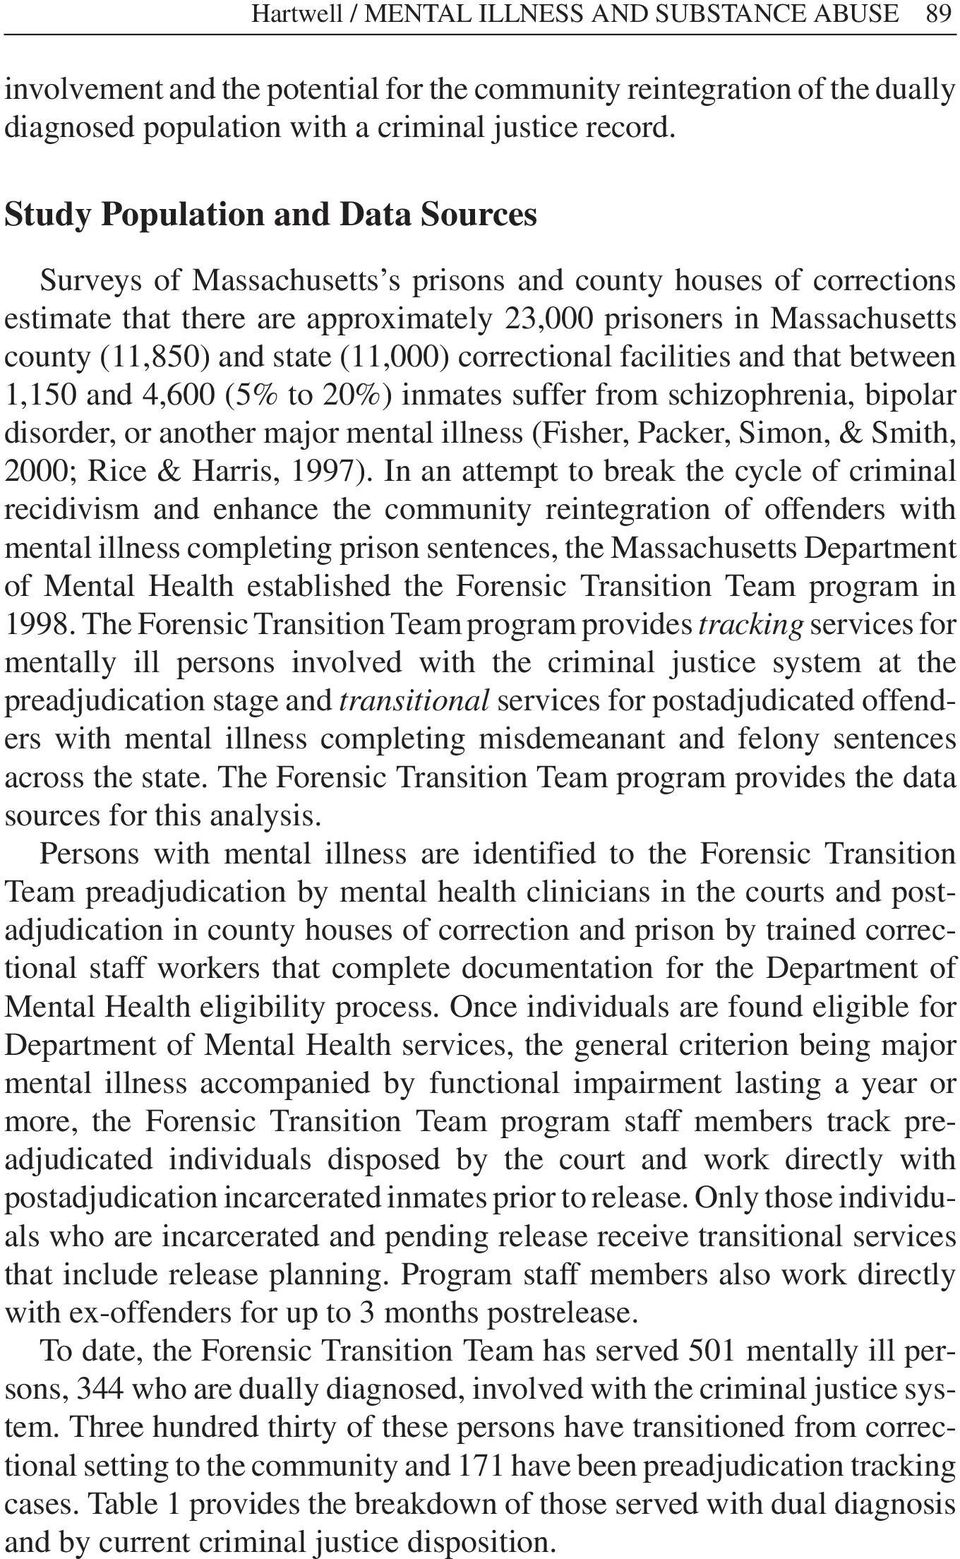 (11,000) correctional facilities and that between 1,150 and 4,600 (5% to 20%) inmates suffer from schizophrenia, bipolar disorder, or another major mental illness (Fisher, Packer, Simon, & Smith,